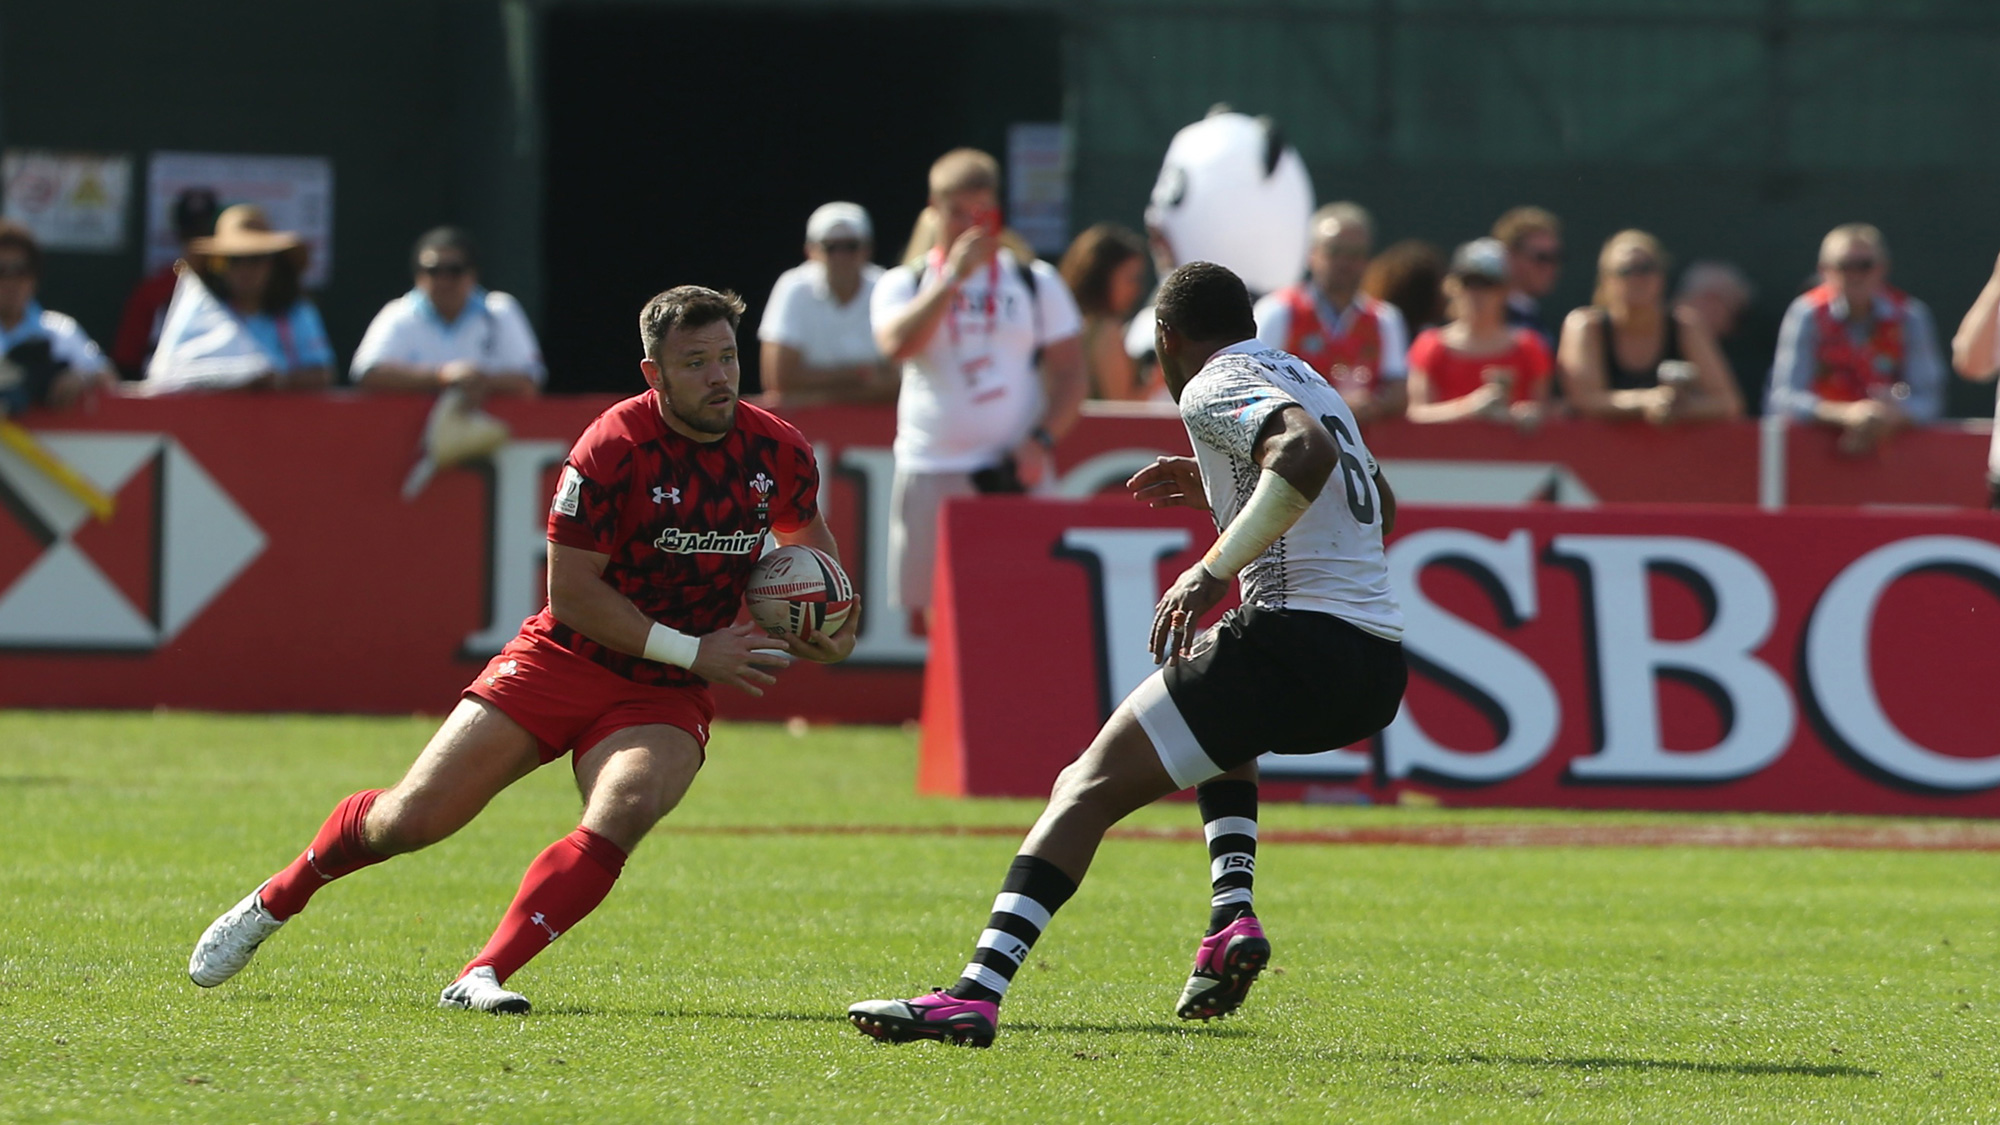 Wales Sevens News - Welsh Rugby Union | Wales & Regions